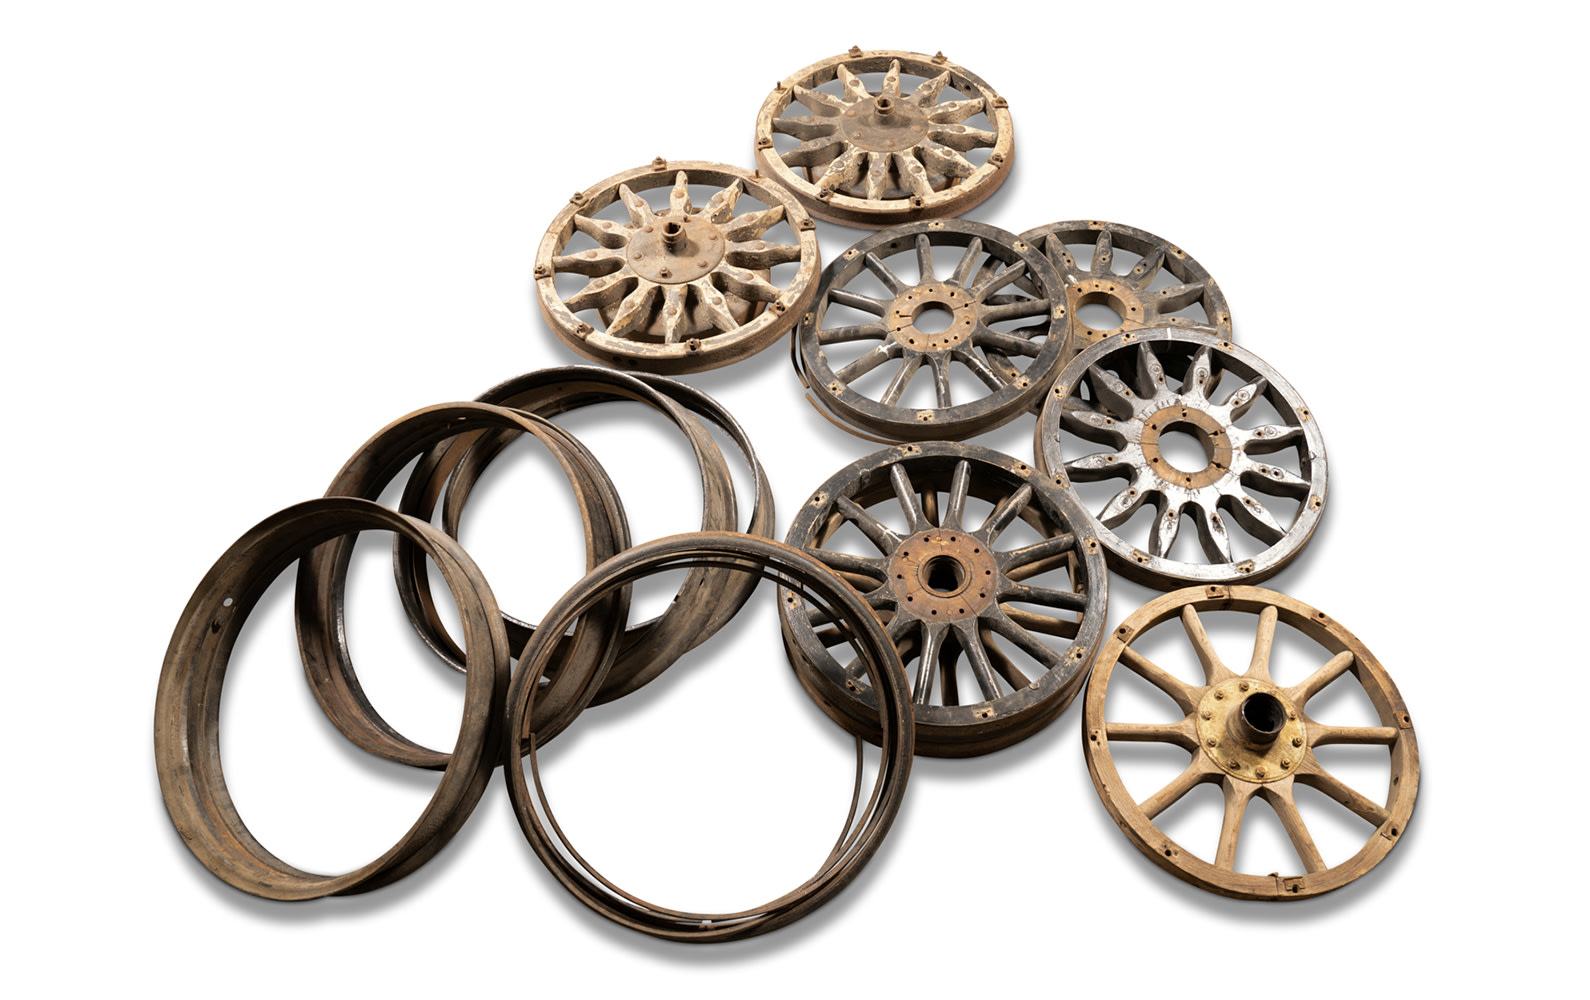 Prod/O21E - Phil Hill C 2021/C0119_Wooden-Spoke Wheels, Steel Rims and Lockrings/C0119_Wooden_Spoke_Wheels_Rims_Lockrings_1_jymzoa